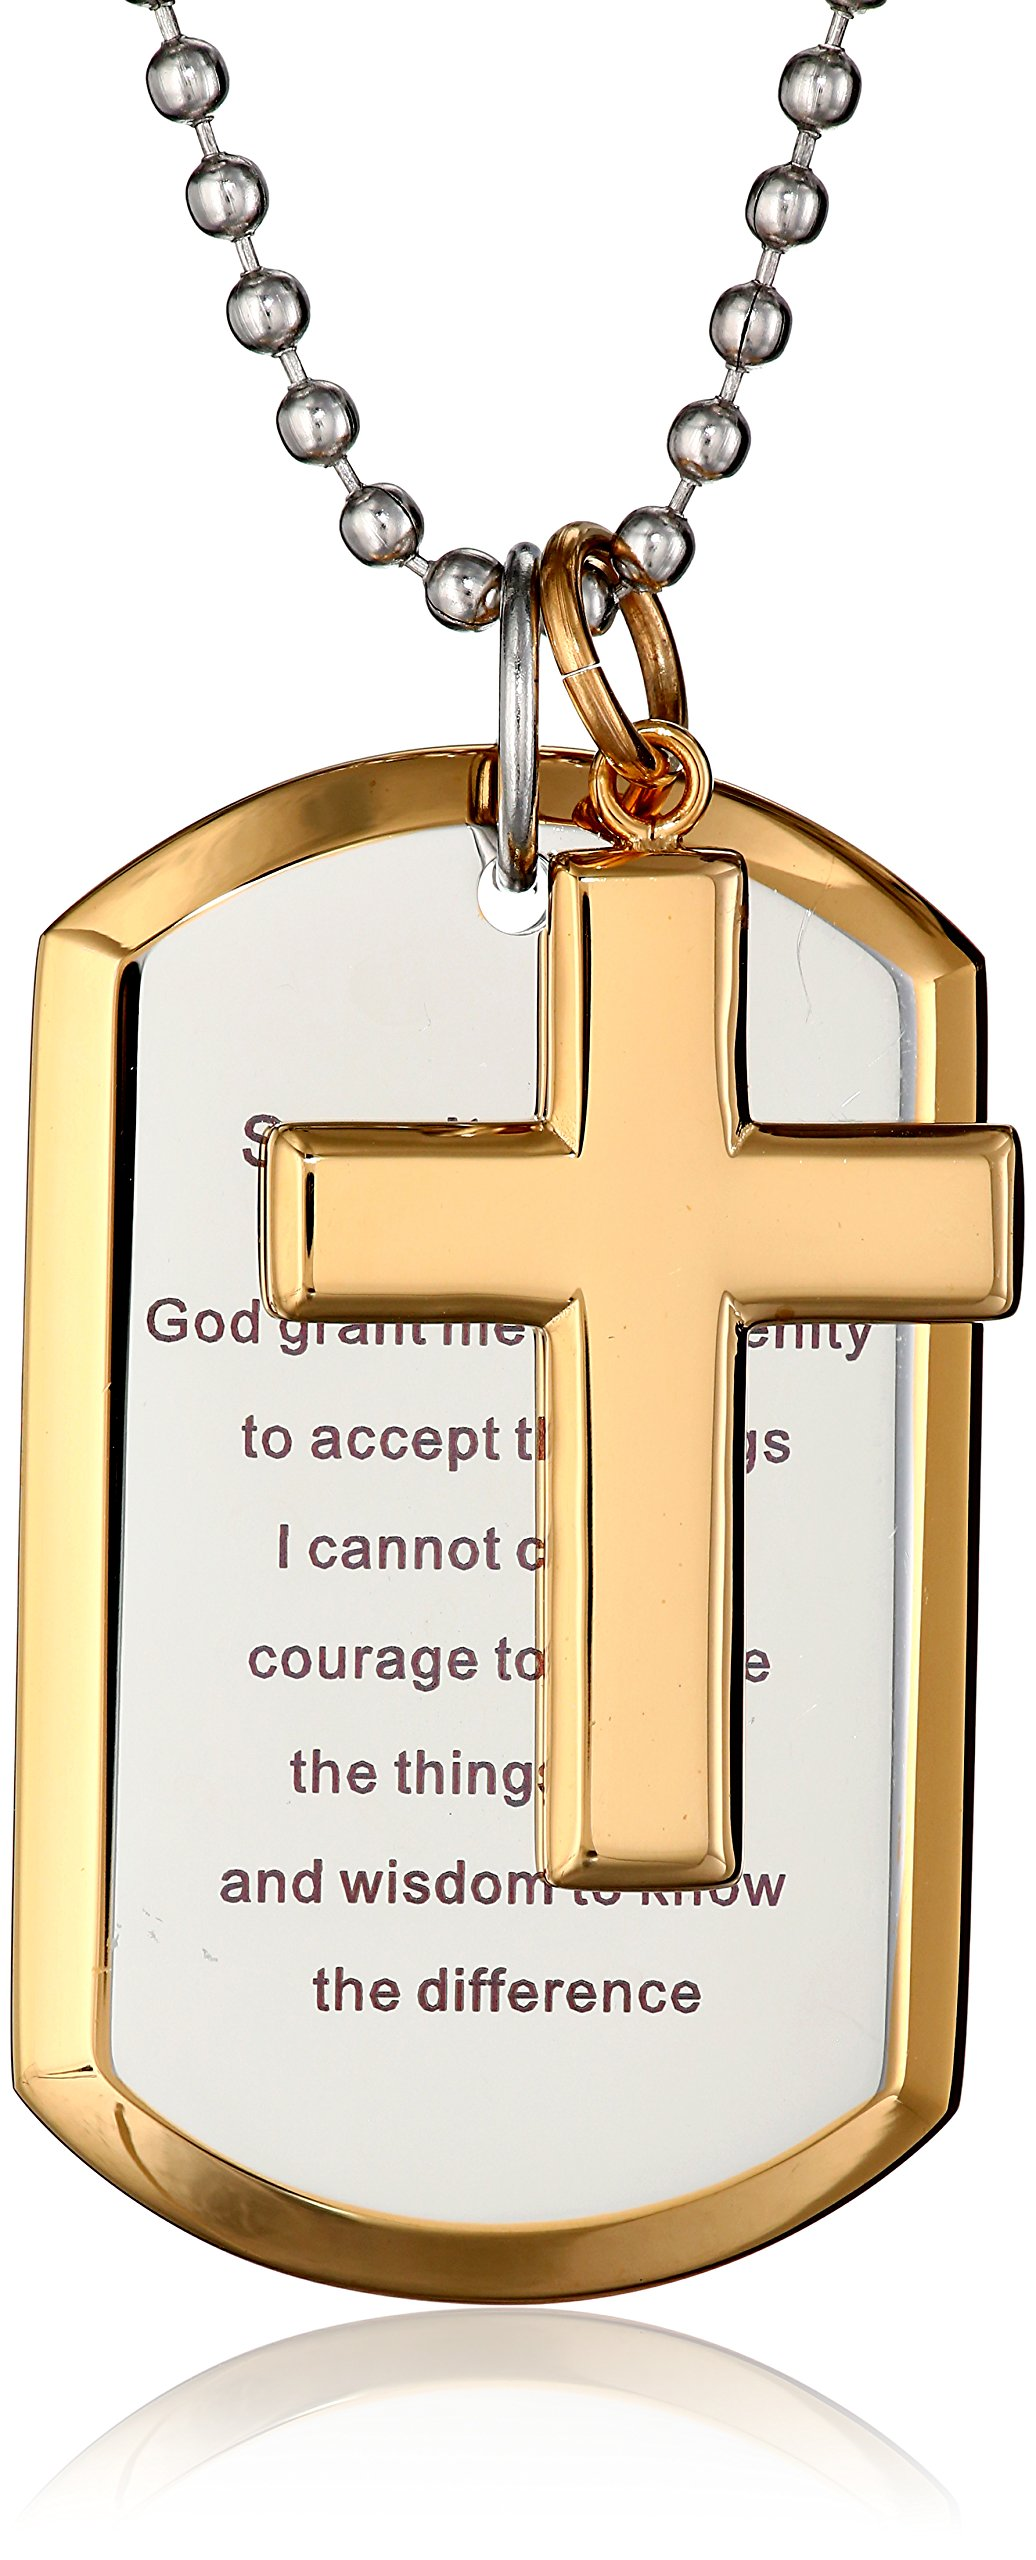 Cold Steel Men's Stainless Steel Yellow Immersion Serenity Prayer Cross Dog Tag Pendant Necklace, 24''